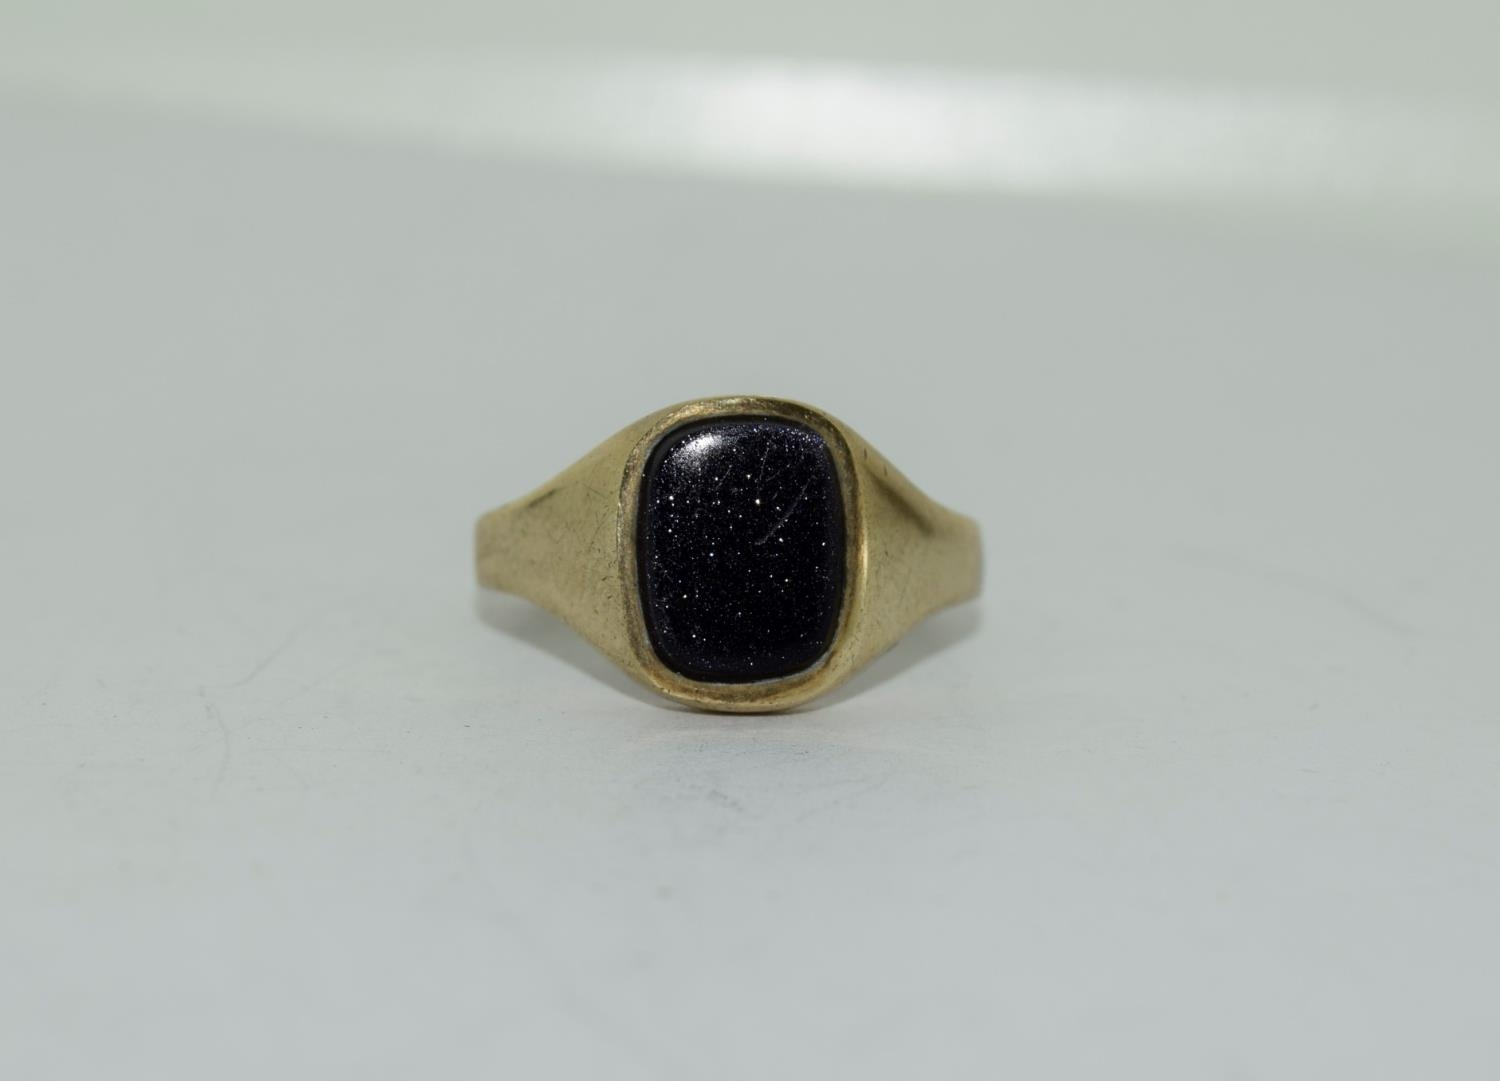 9ct gold gents sygnet ring set with unpolished amethyst centre stone size Q - Image 11 of 12